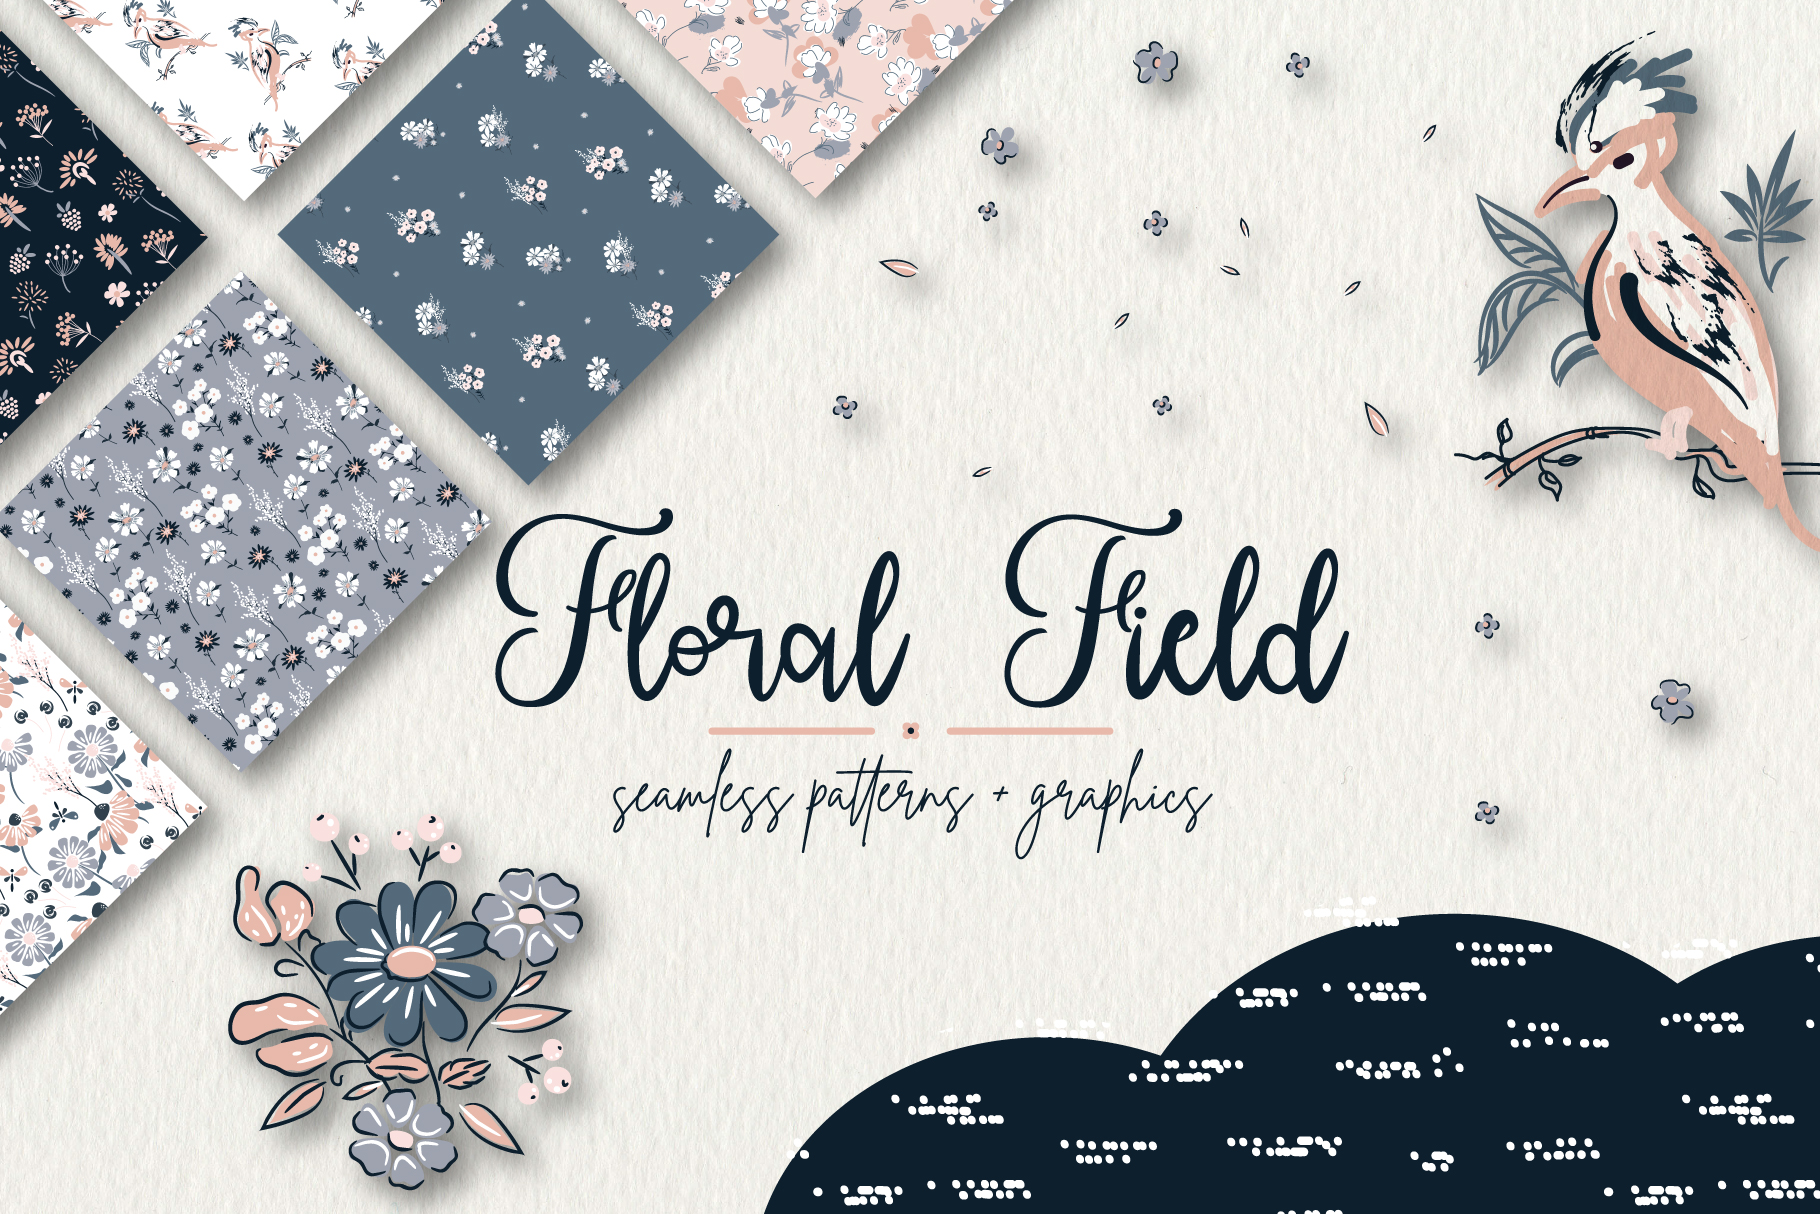 Floral Field - Patterns & Graphics example image 1